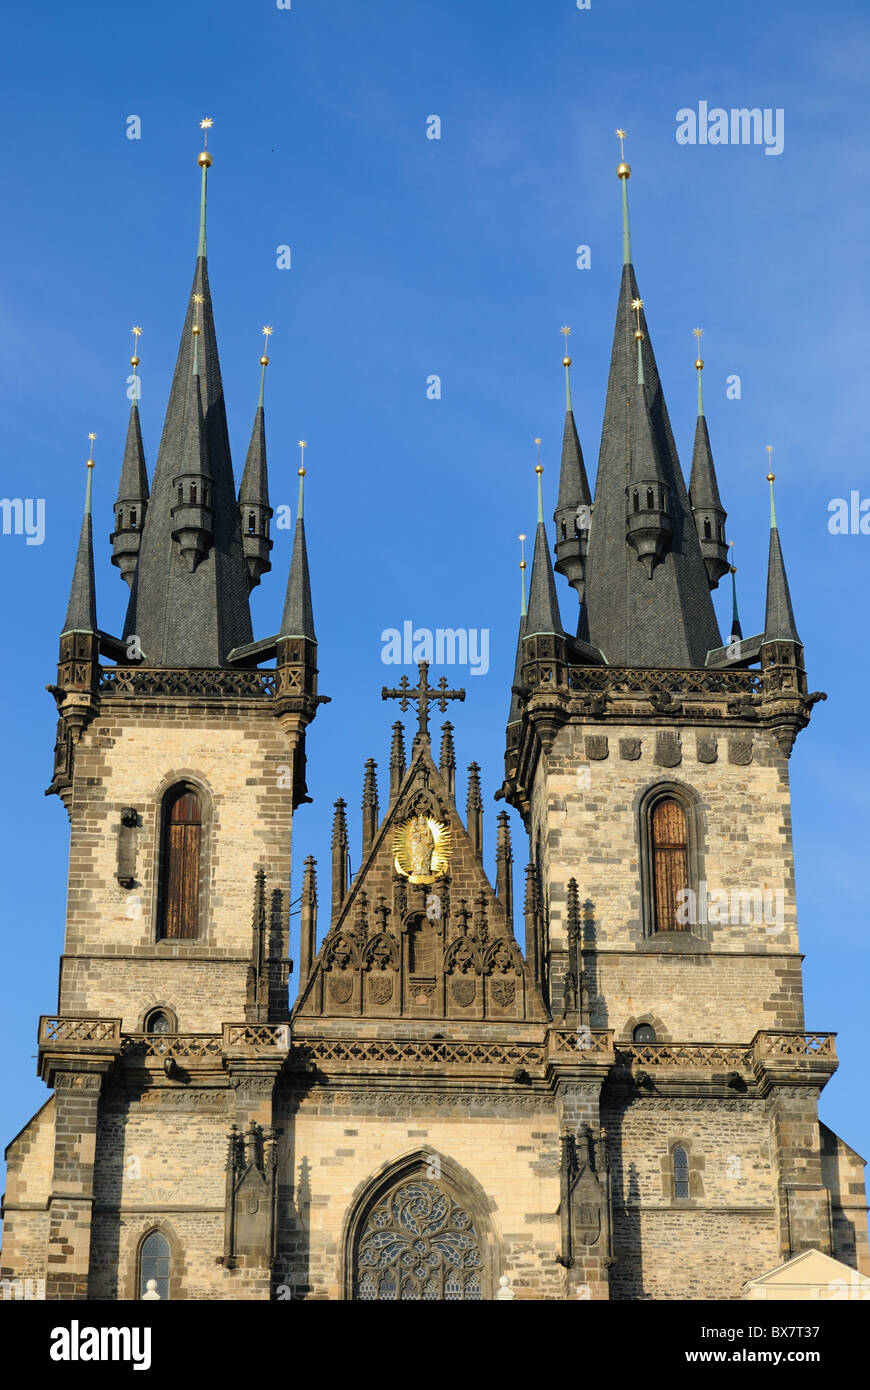 Tyn Cathedral in Prague, Czech Republic. - Stock Image